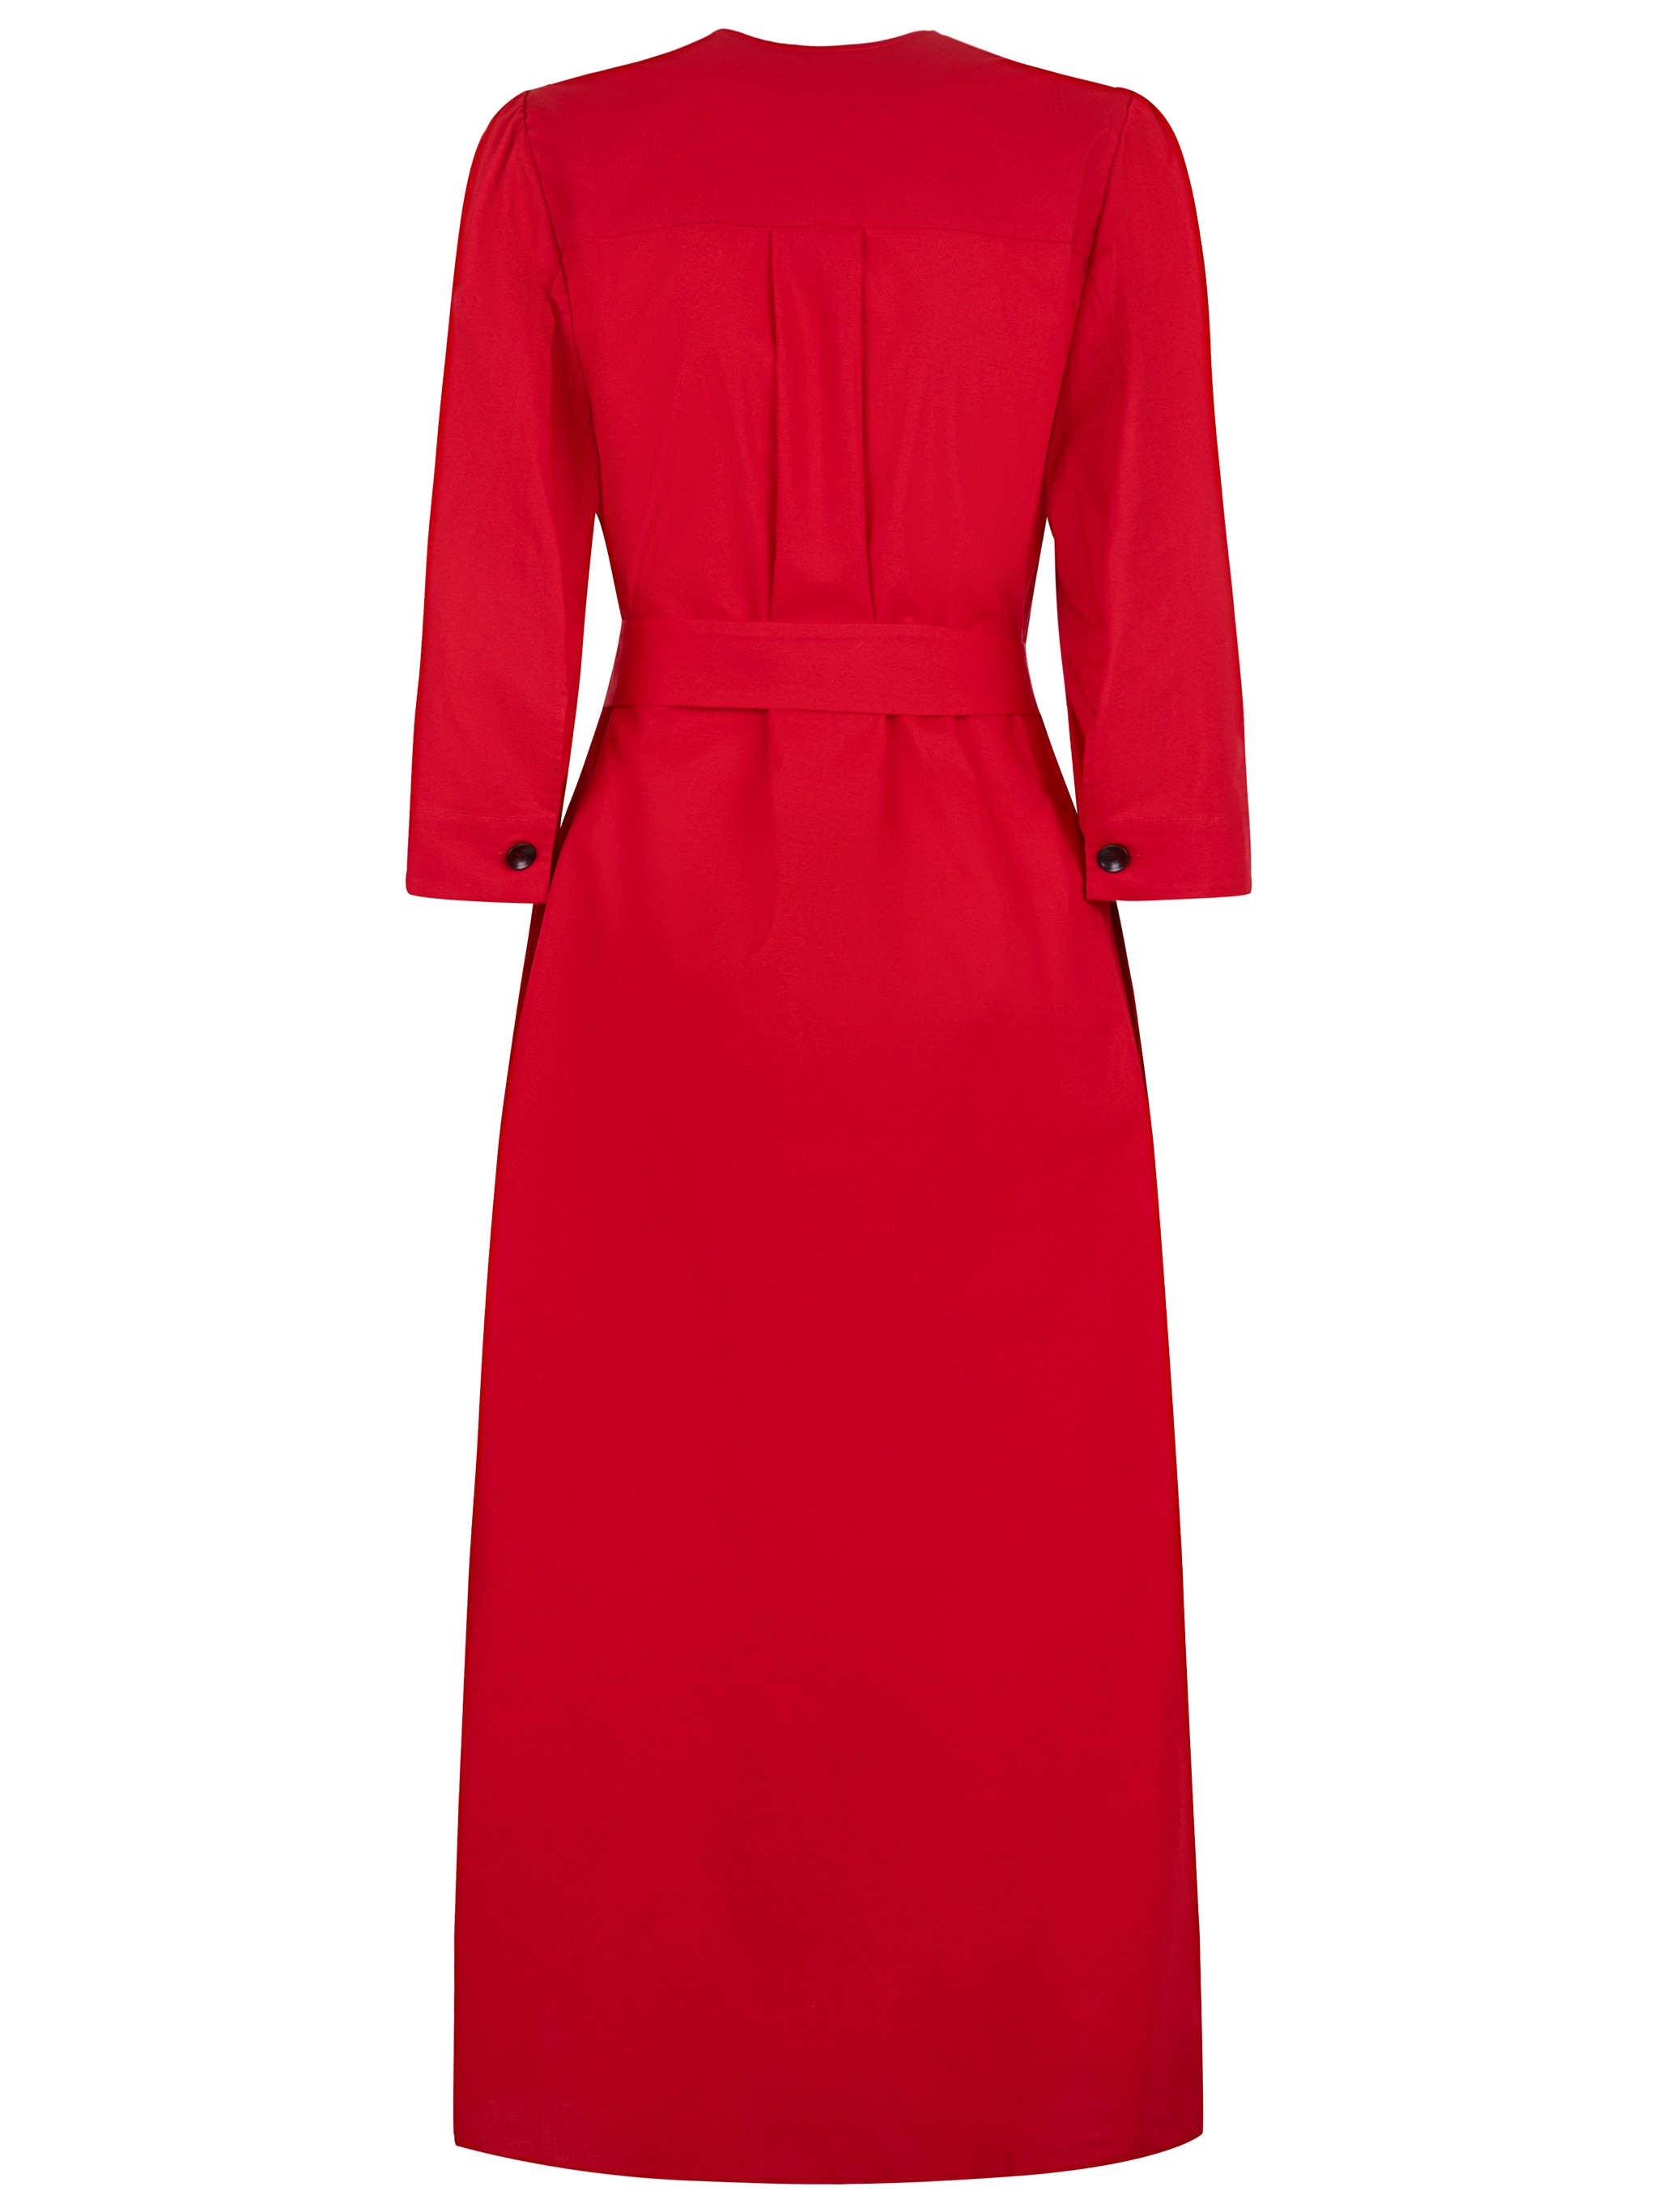 The Raminta Shirt Dress - Lightweight Red - Alice Early